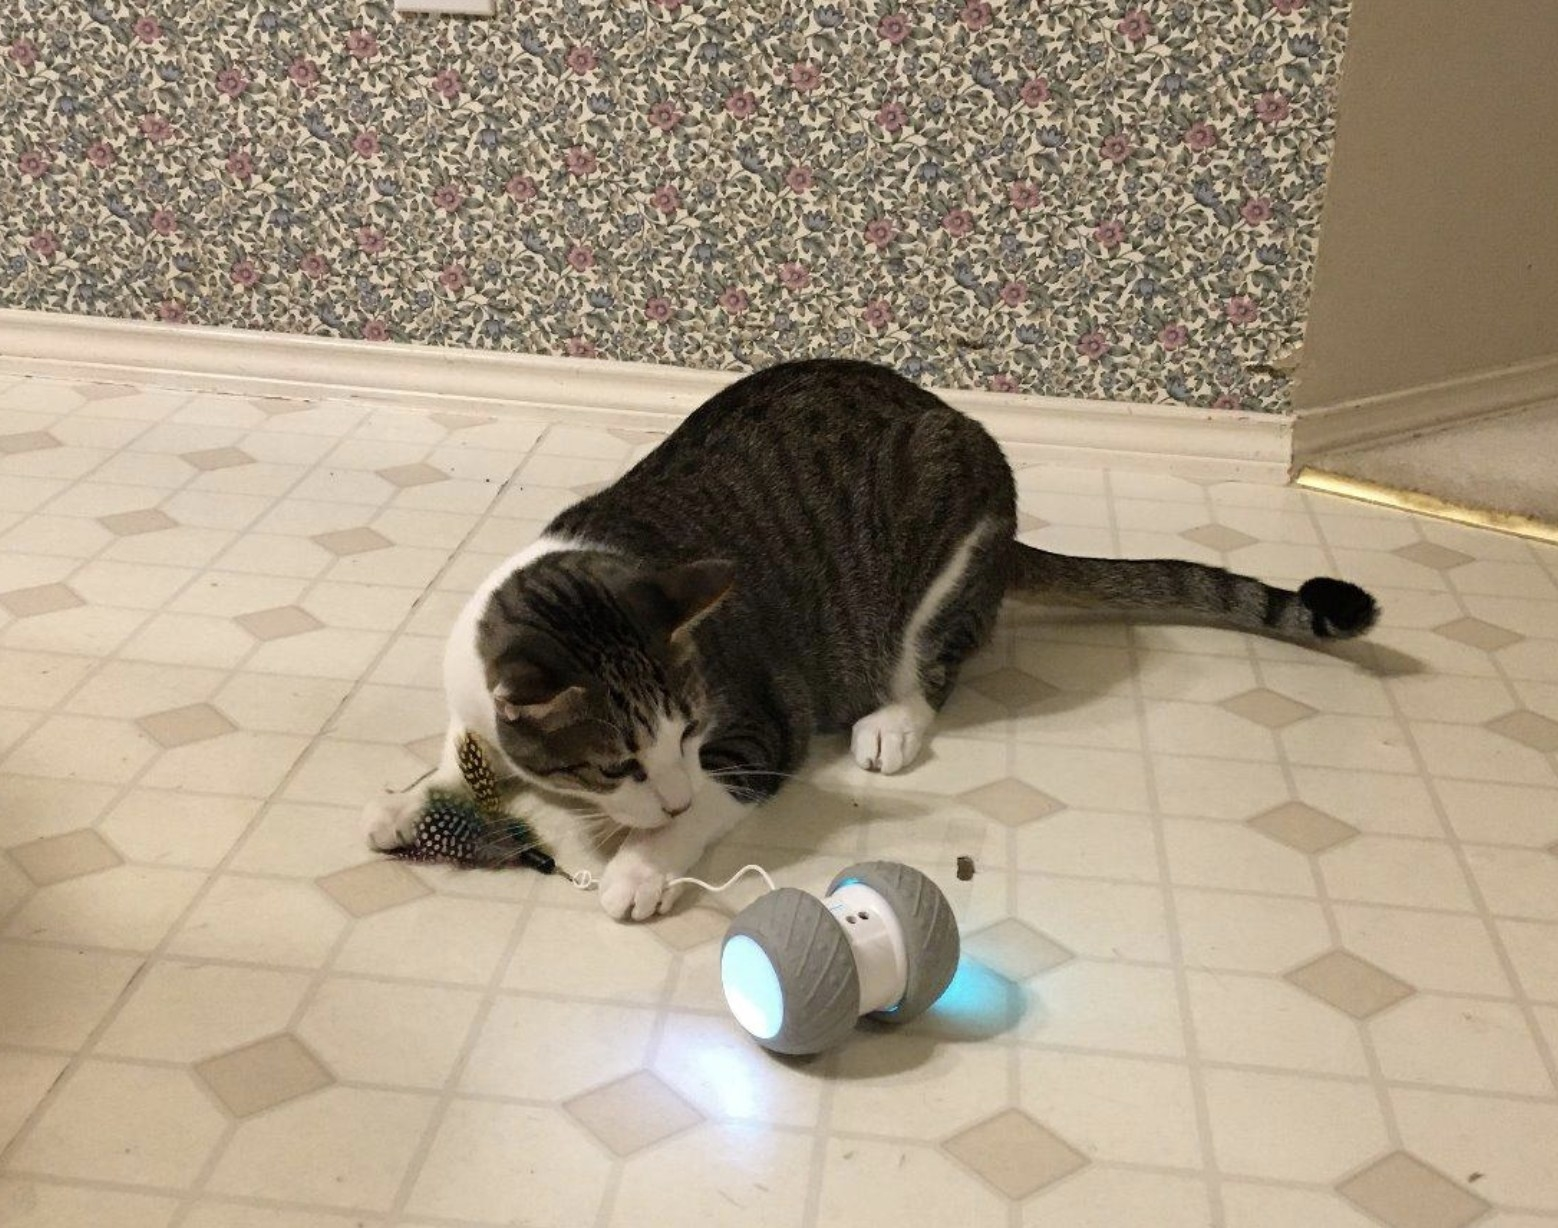 A striped cat wth white paws holding onto the feather attachment of a robotic toy